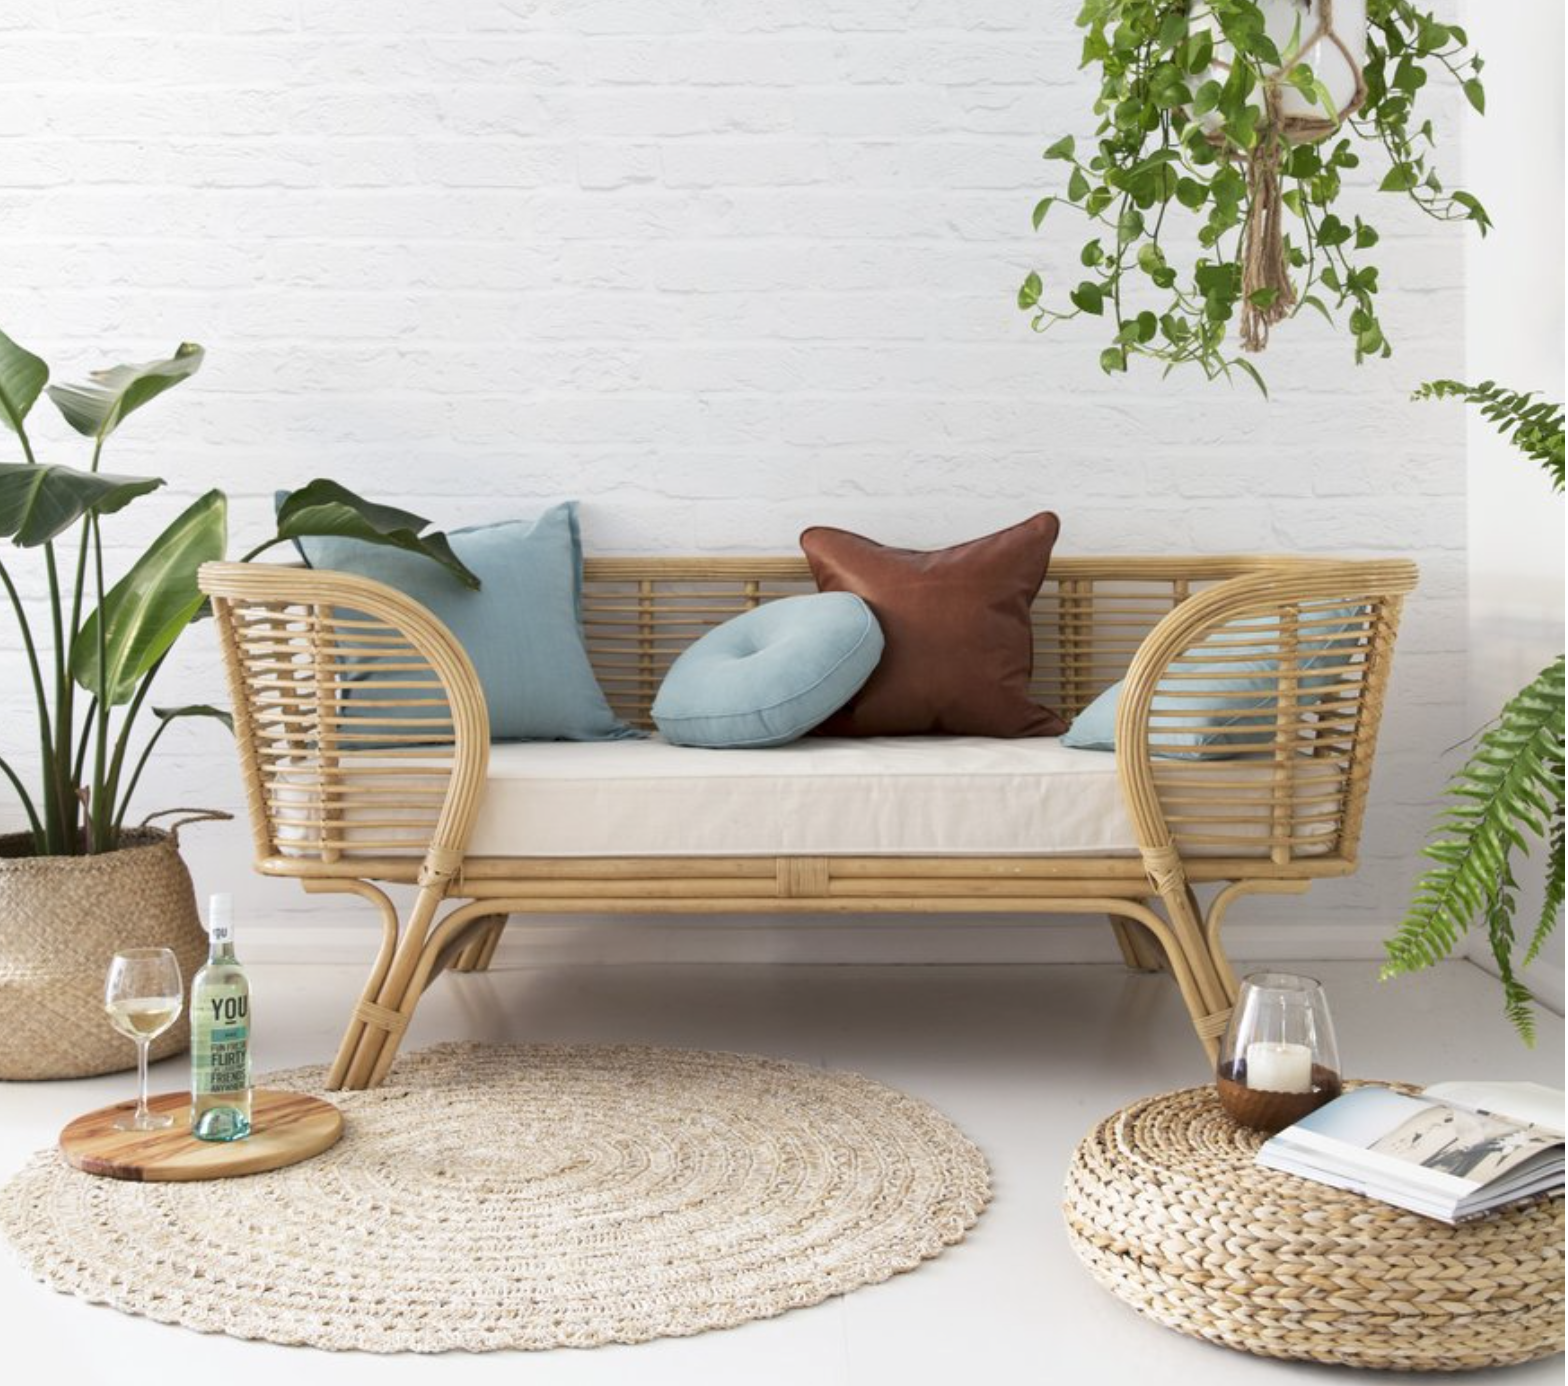 The Lounger Daybed in natural.